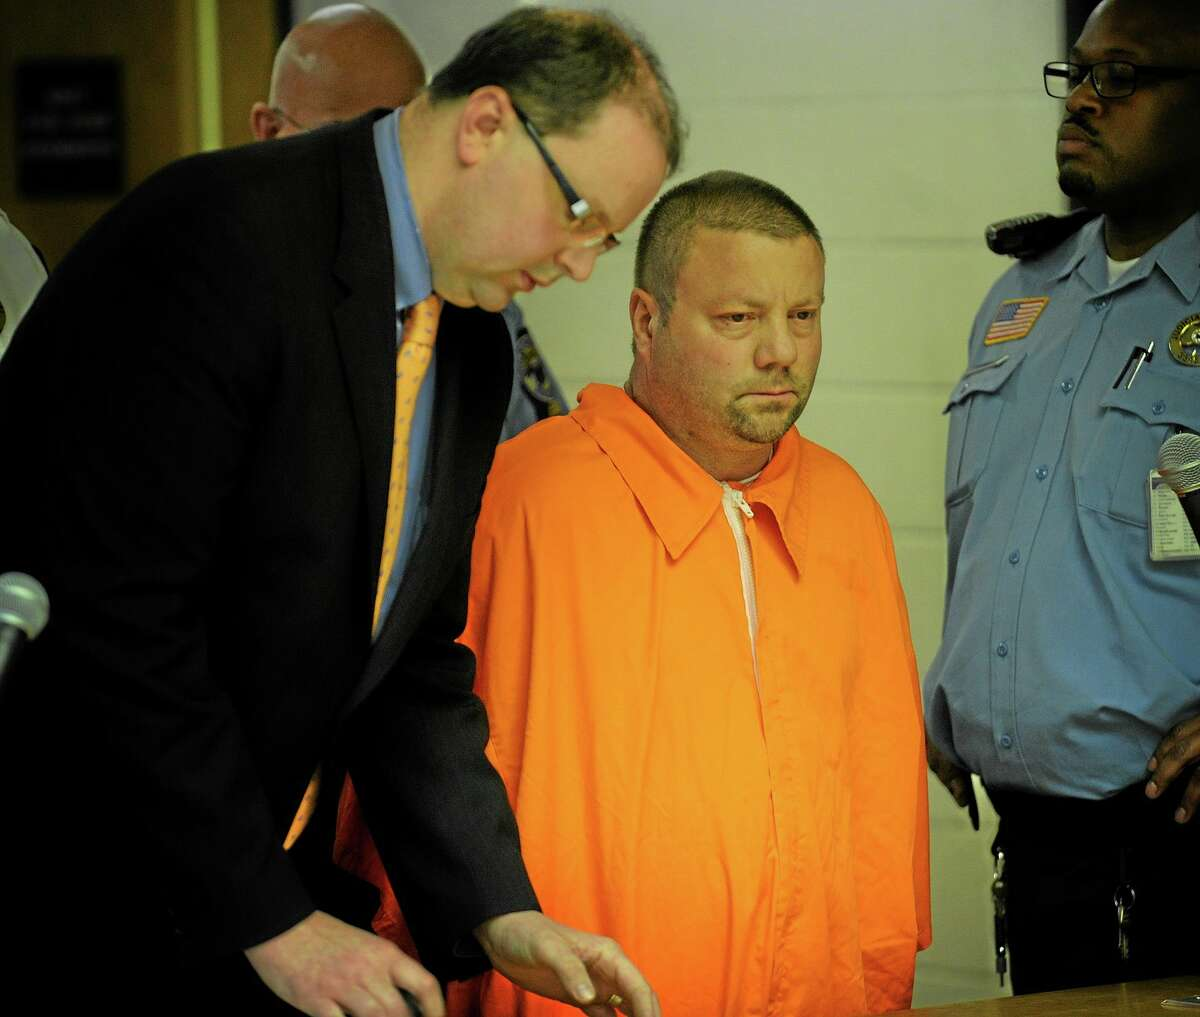 Scott Gellatly, right, stands before the judge during his arraignment in Superior court in Derby on Thursday, May 8, 2014.